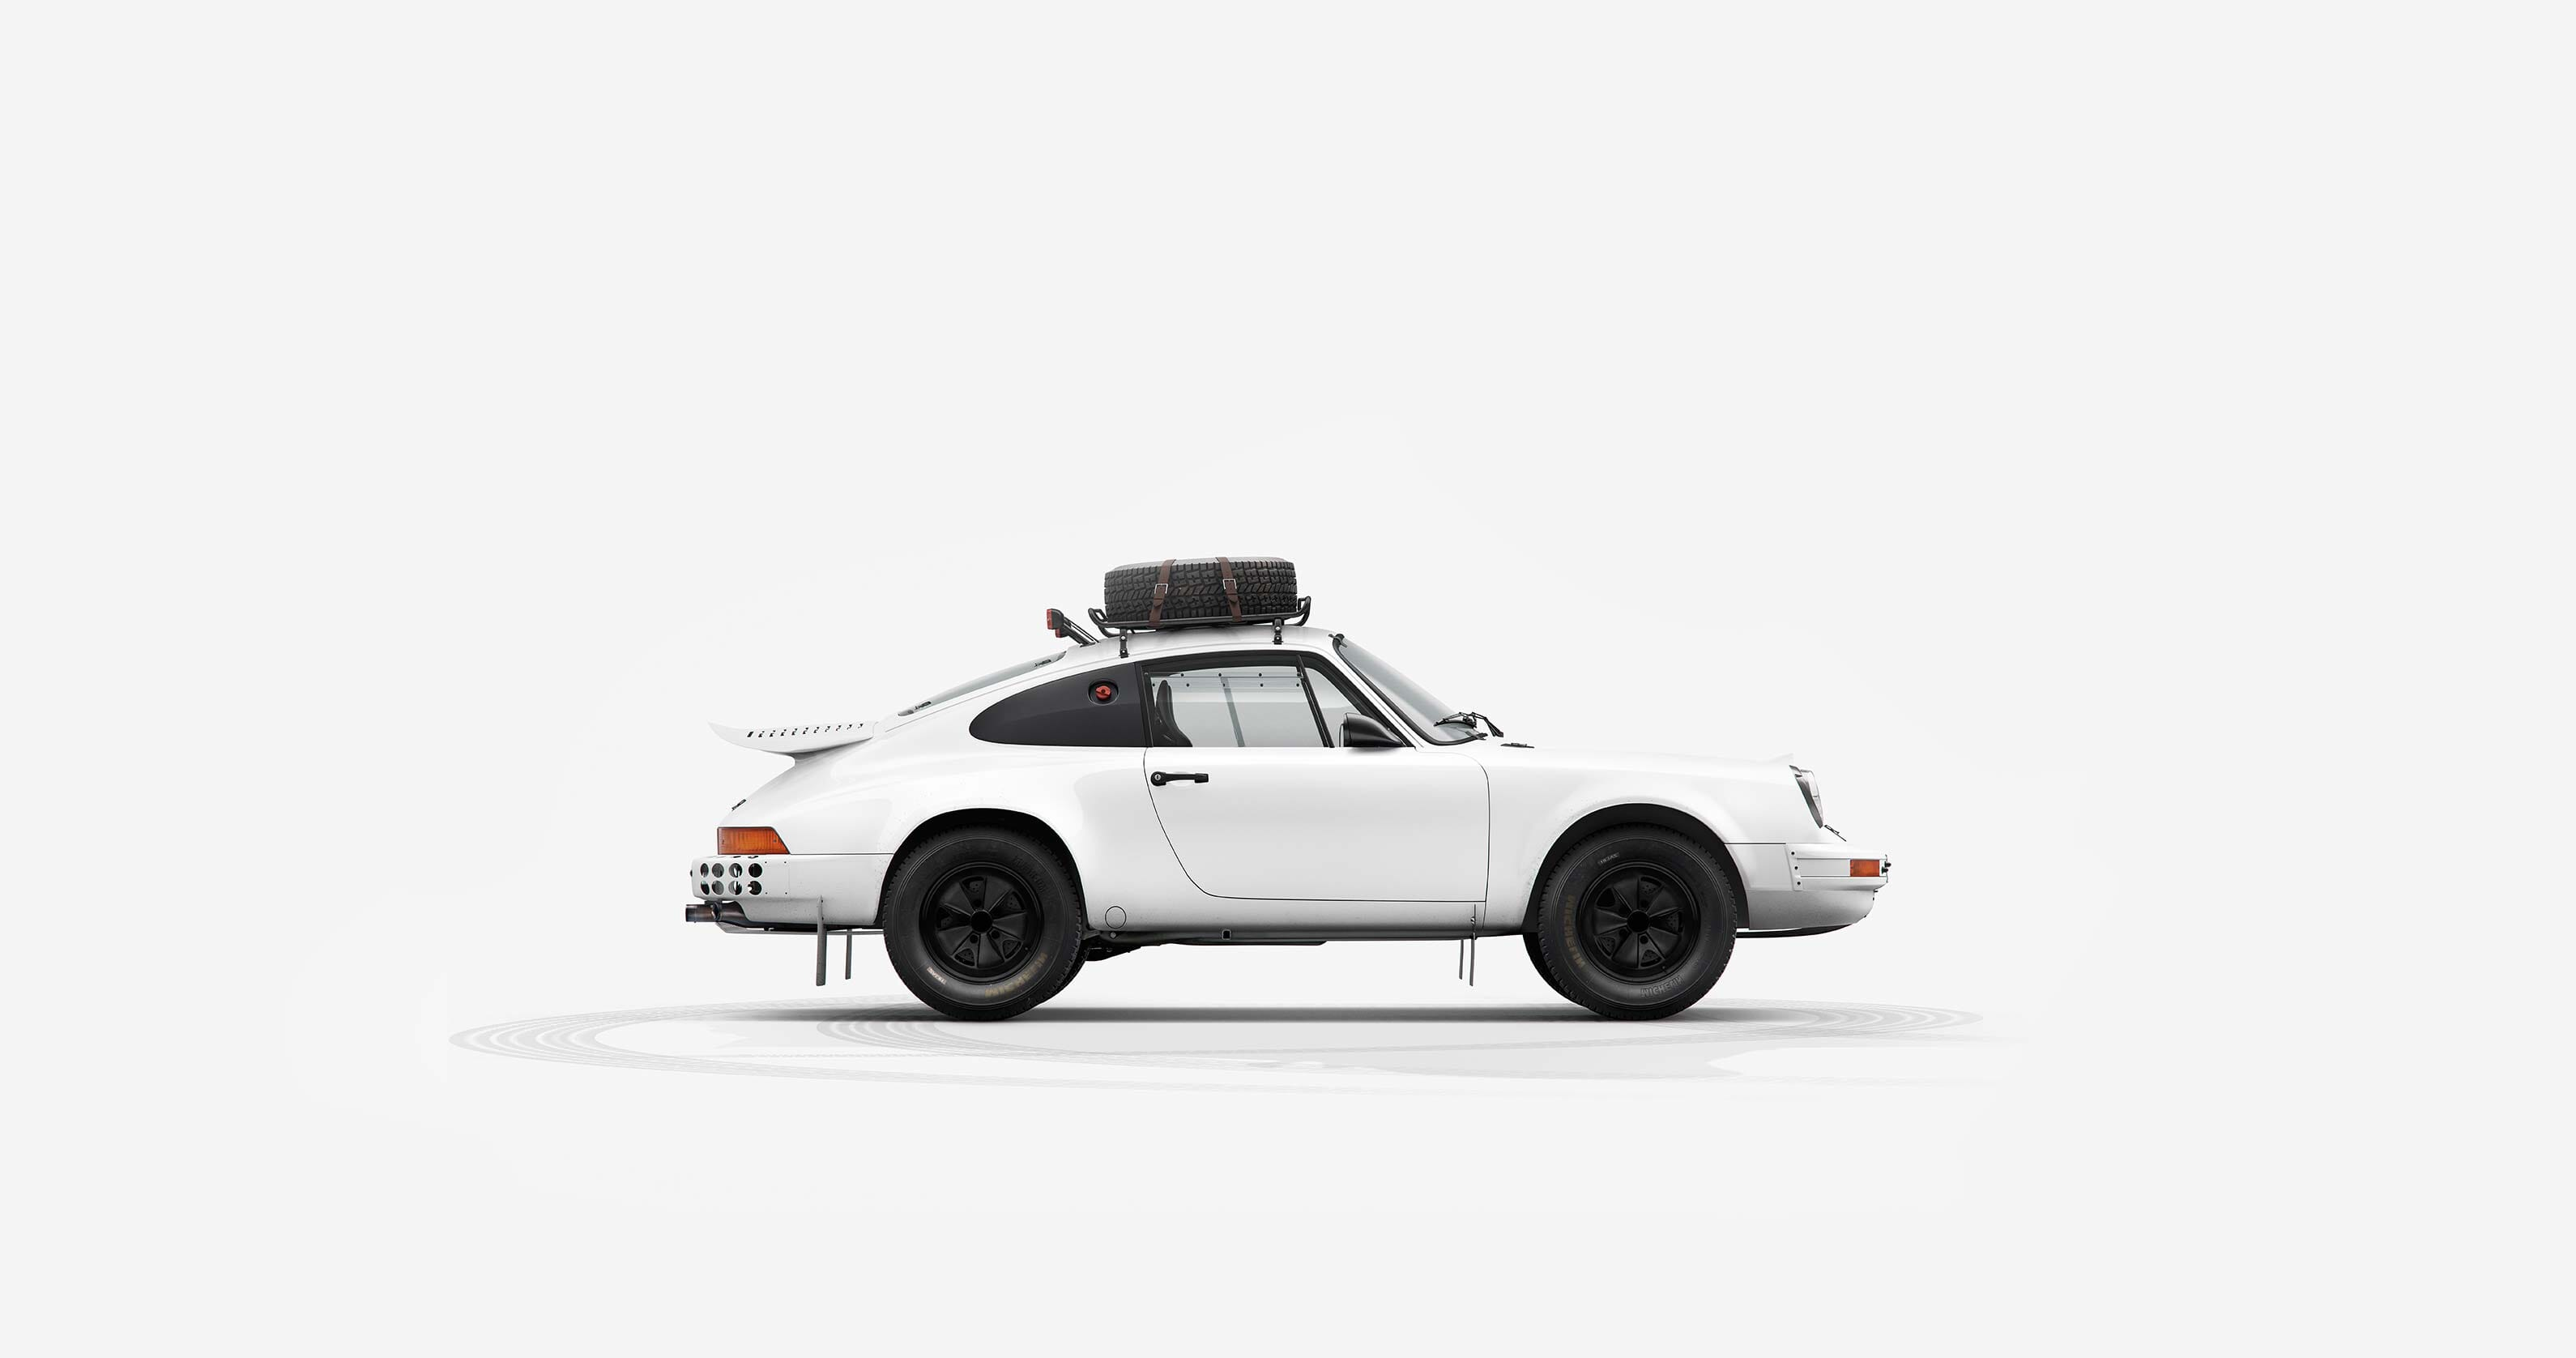 INK Celebrates 70 Years Of Porsche Sports Car With New Prints